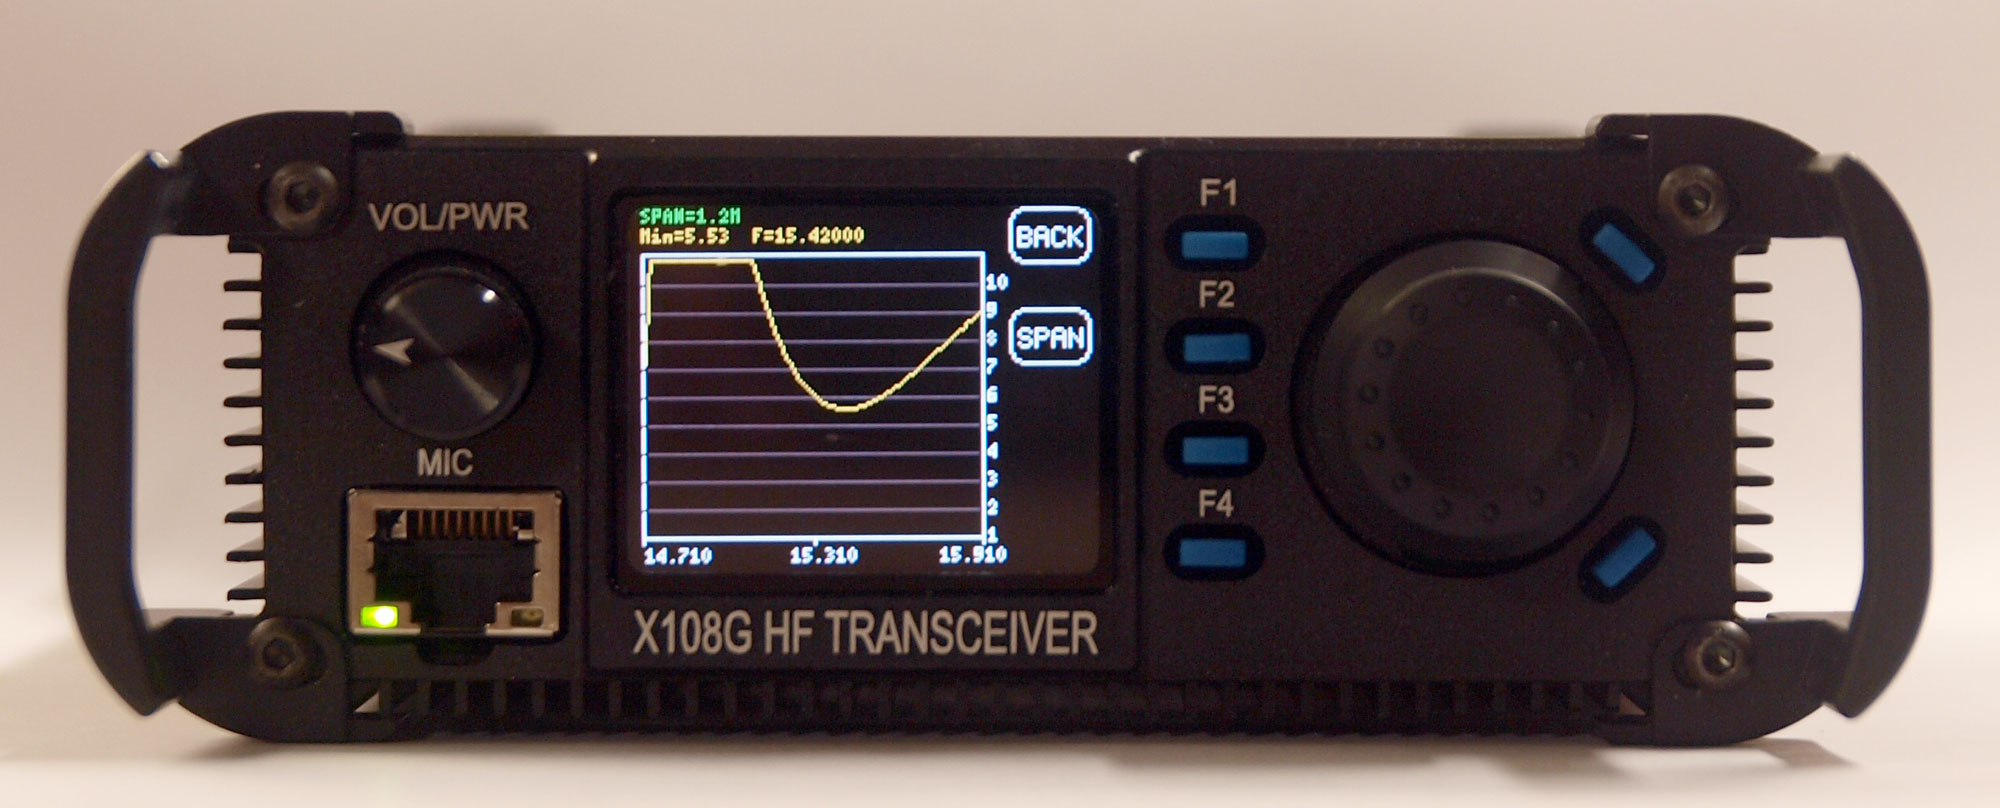 X108G 20 Watt HF Amateur Transceiver - Outdoor Version - 2017 Revision with SWR analyser